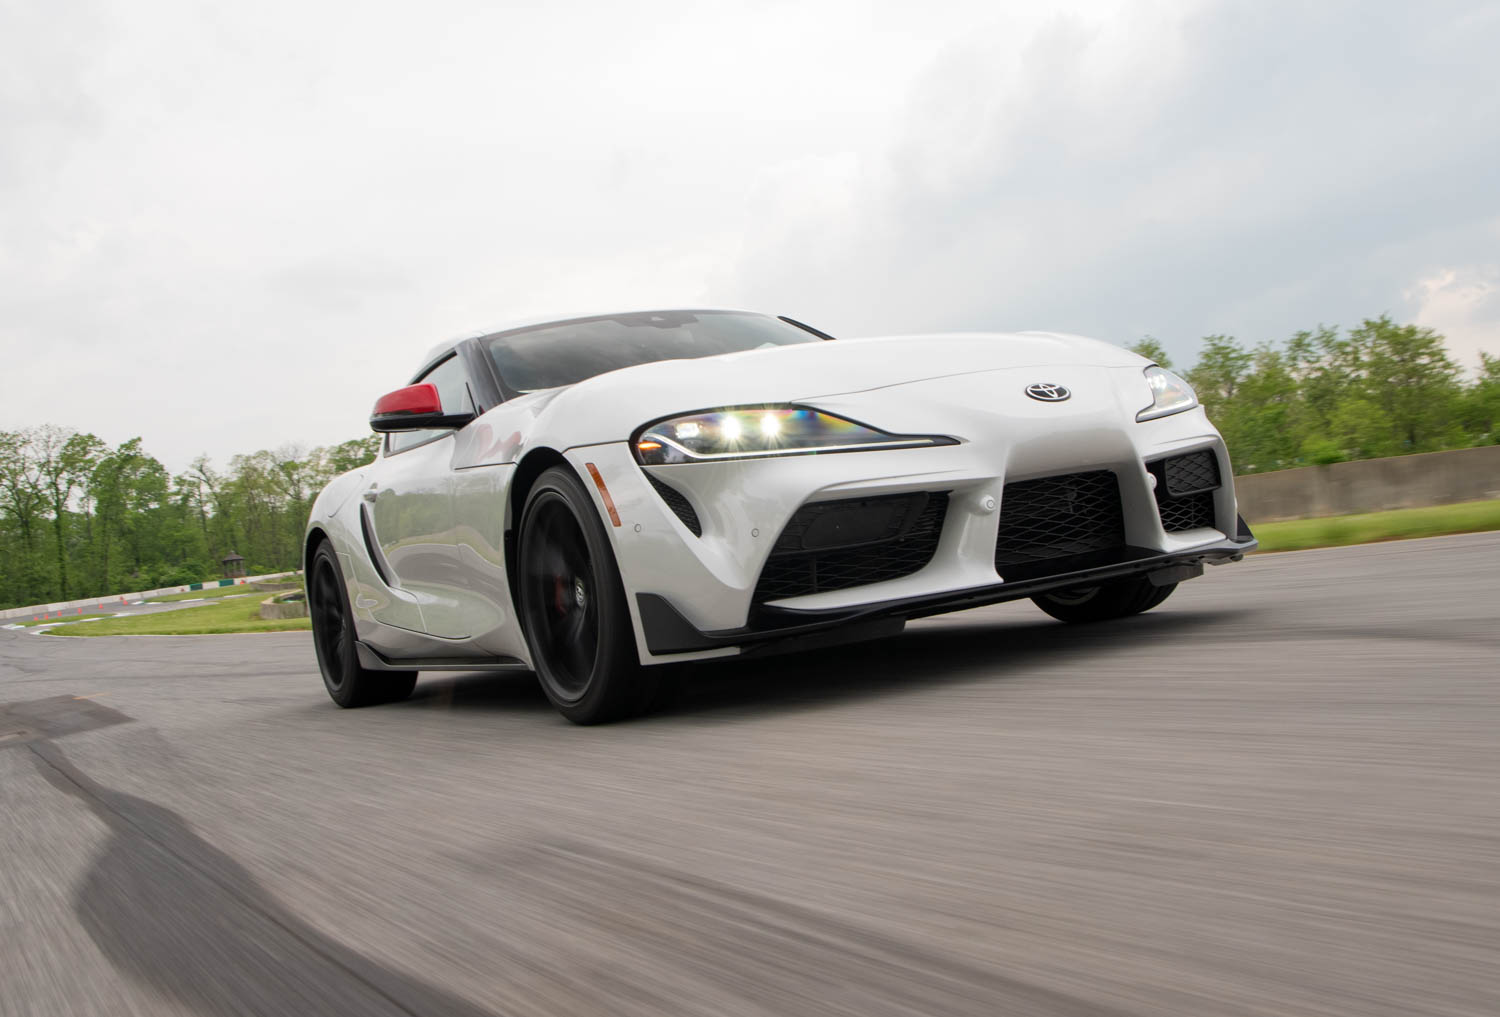 2020 Toyota Supra GR low front 3/4